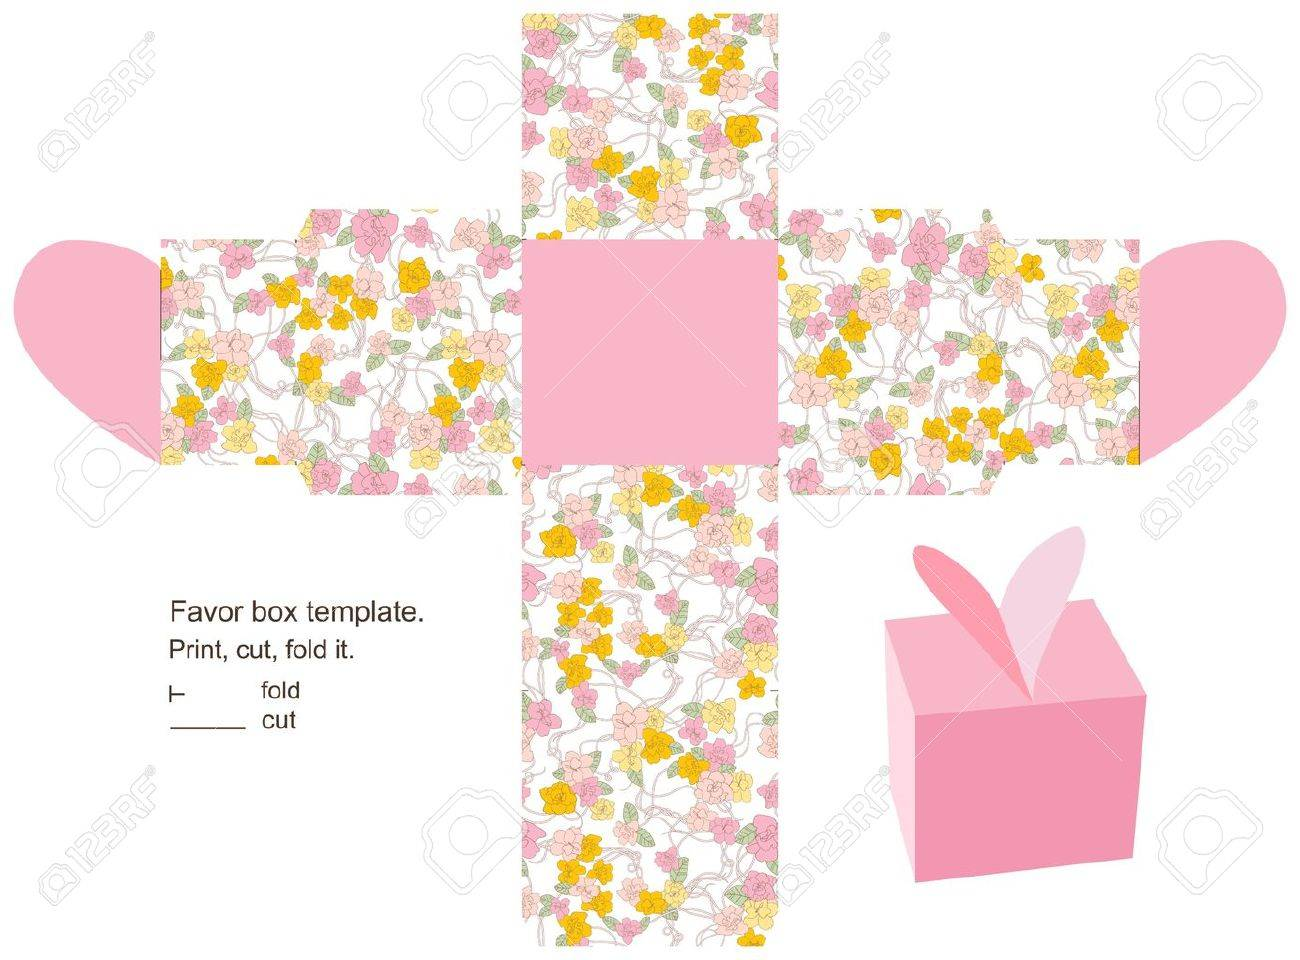 favor box die cut floral pattern empty label royalty free cliparts